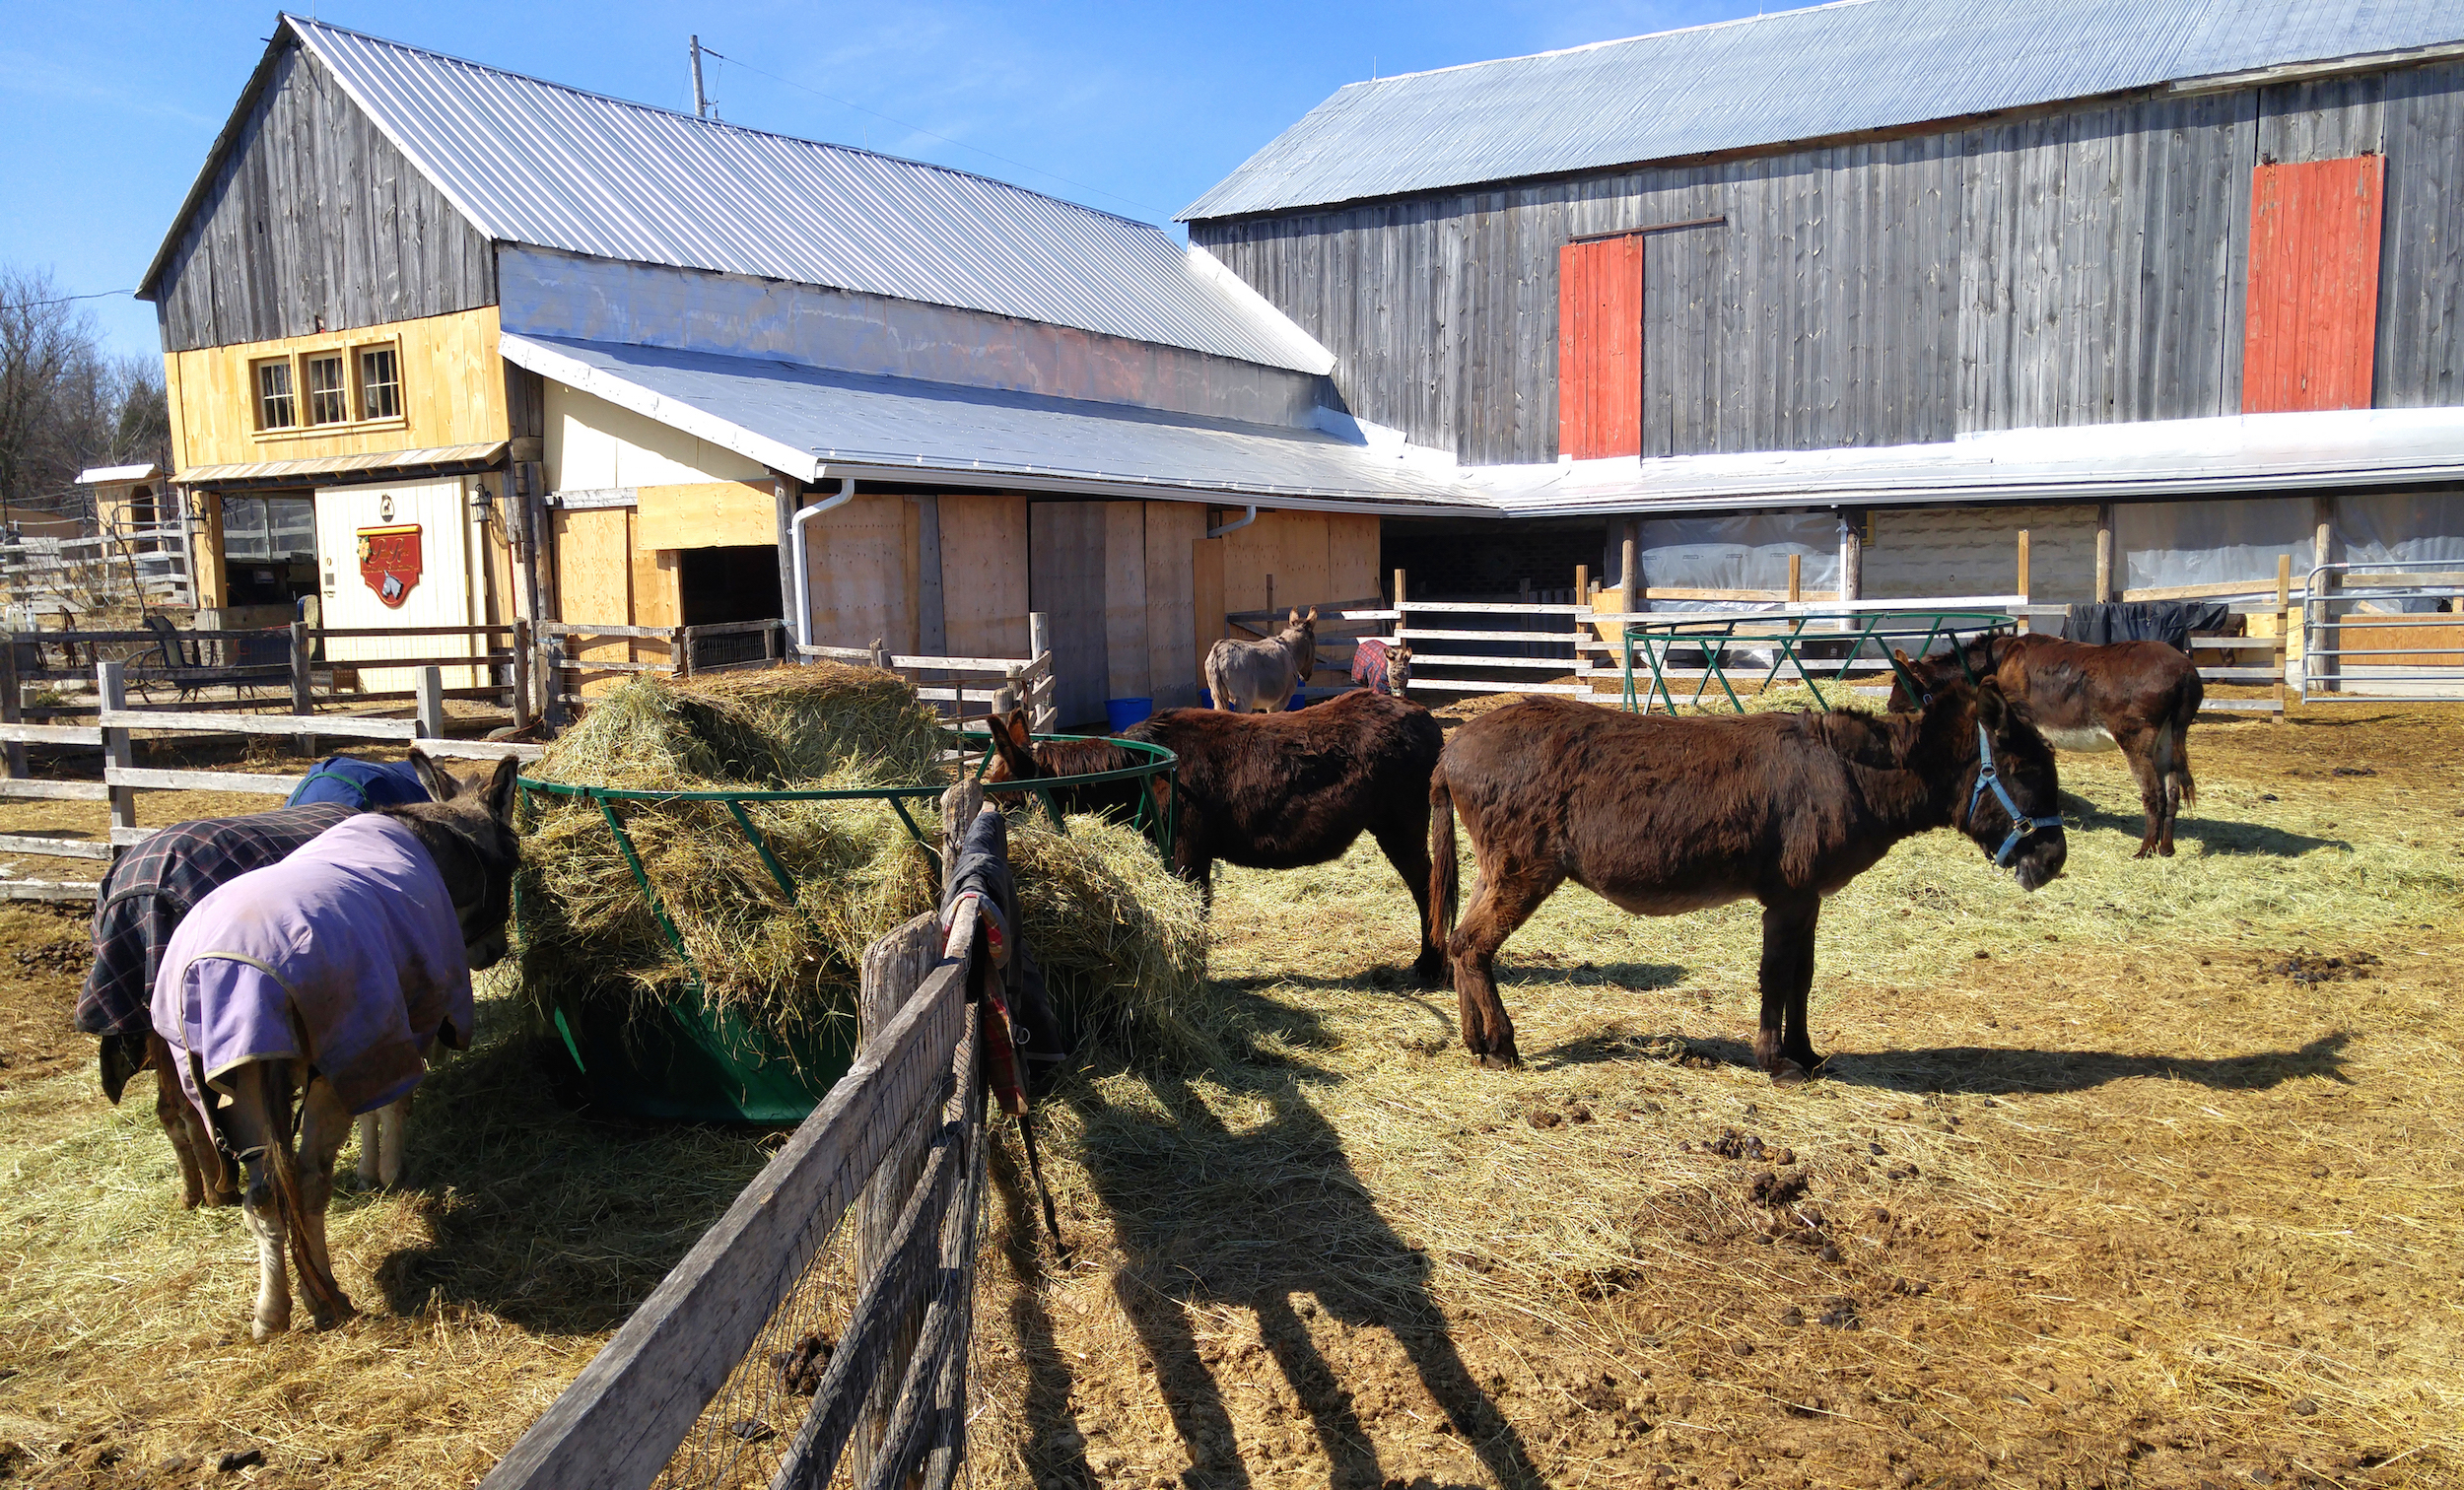 Donkeys in the barnyard, at Primrose Donkey Sanctuary.